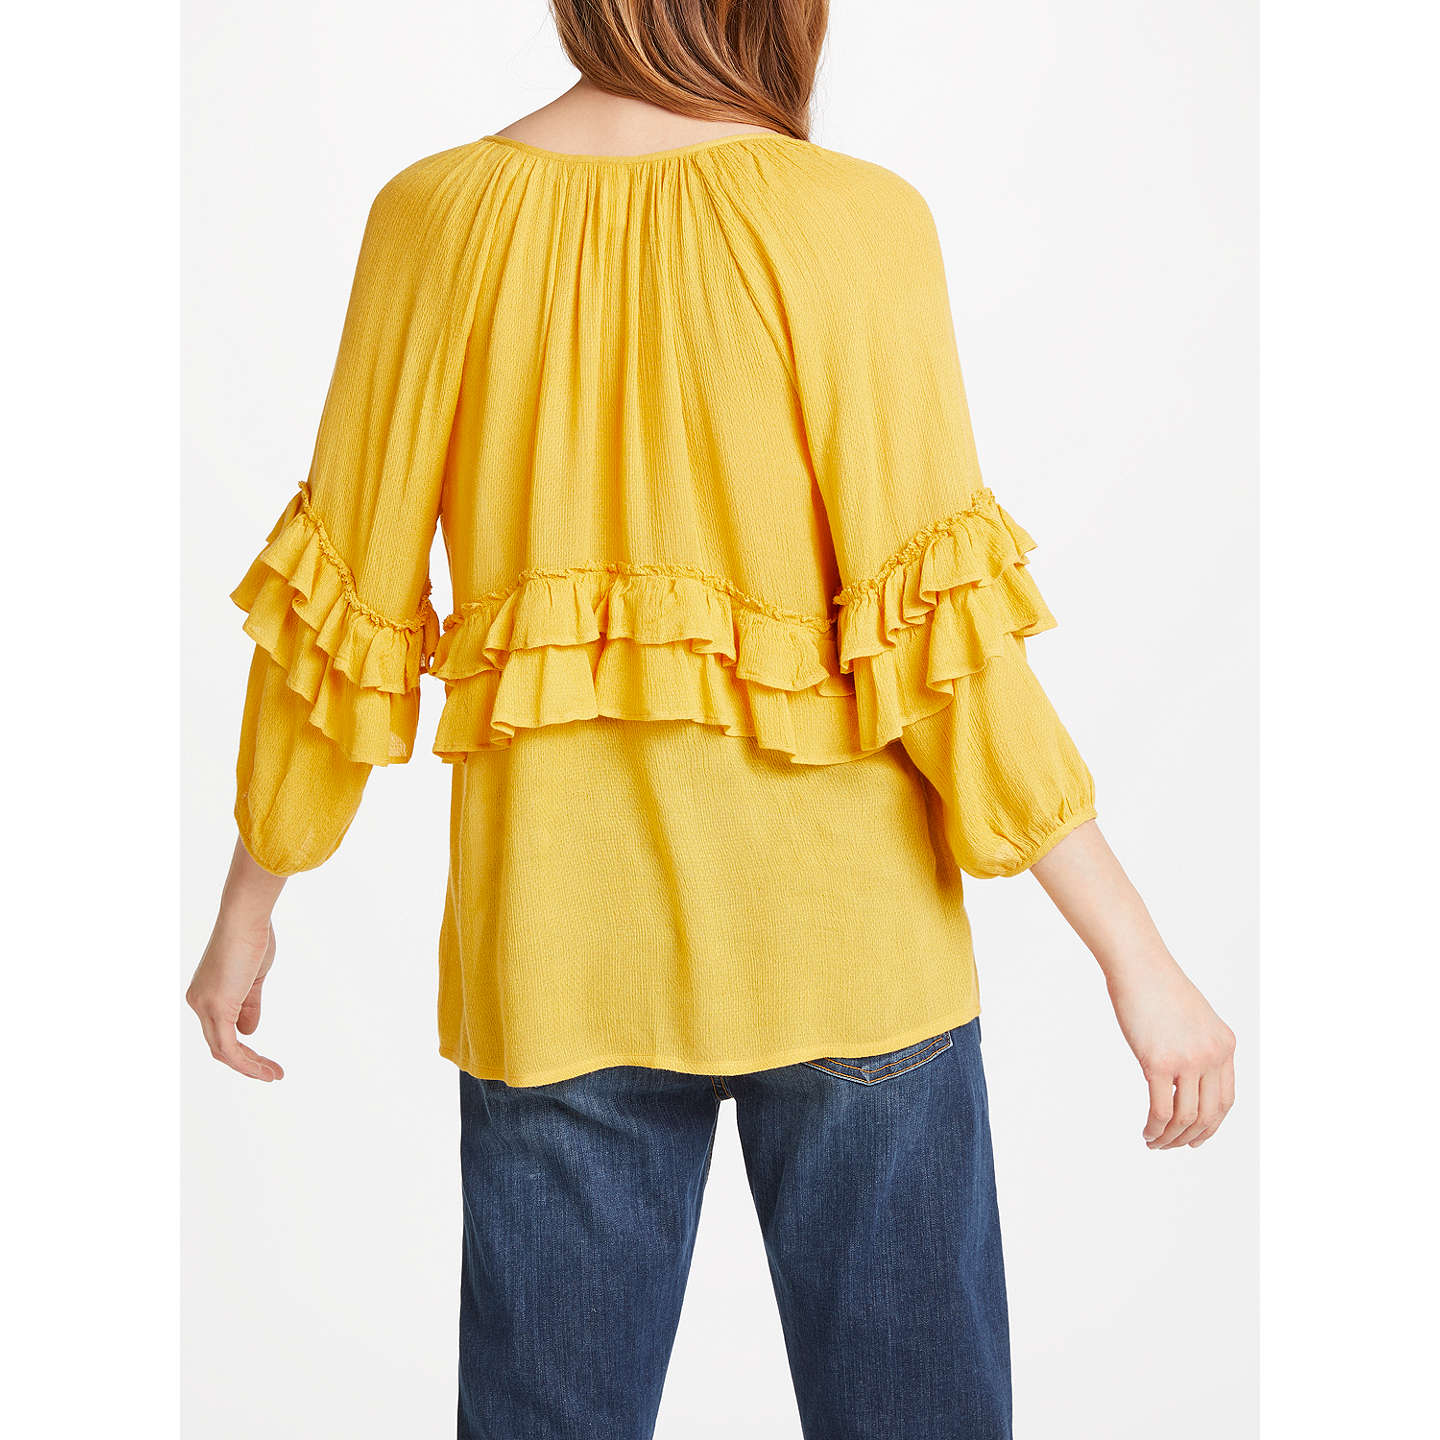 AND/OR Billie Jean Blouse, Ochre